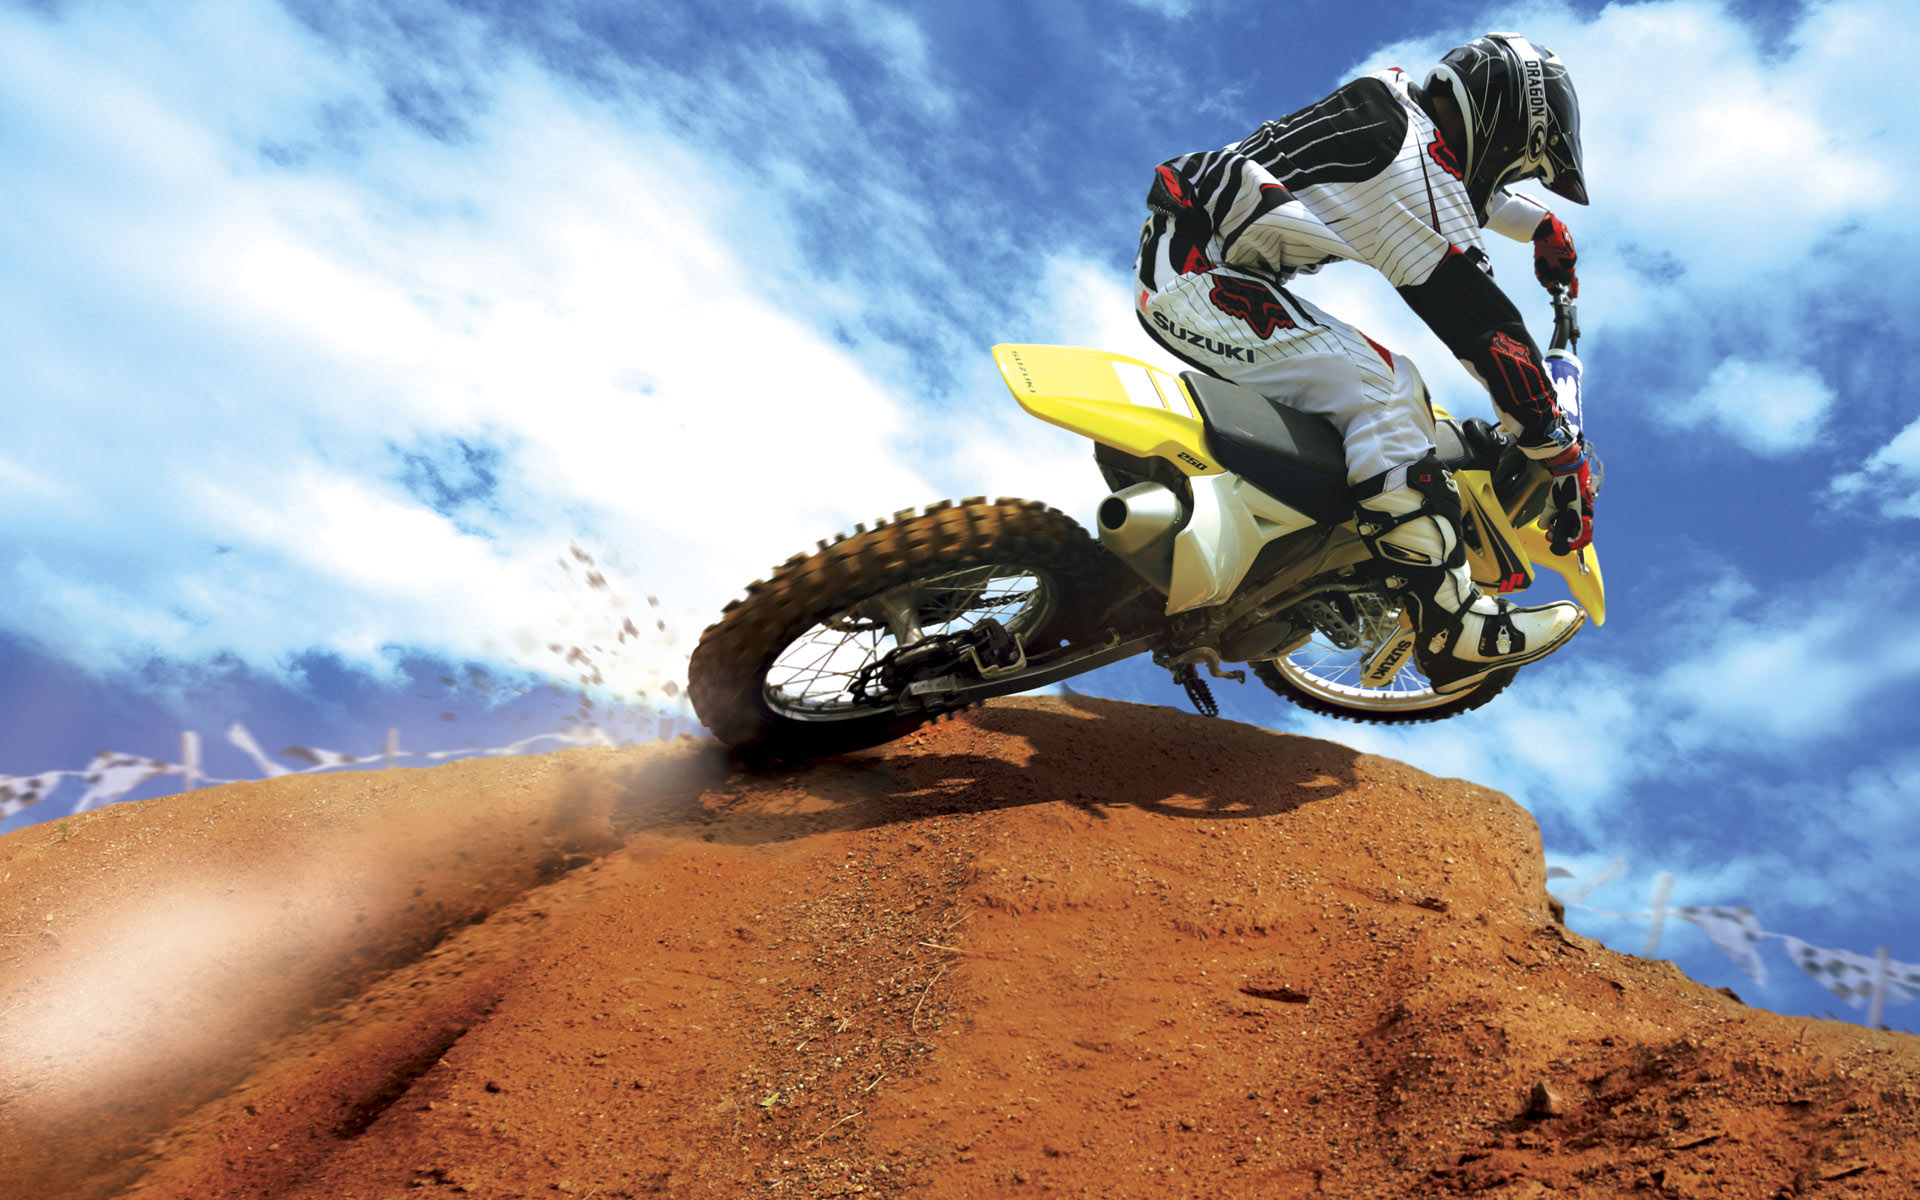 Crazy Motocross Bike 374.92 Kb